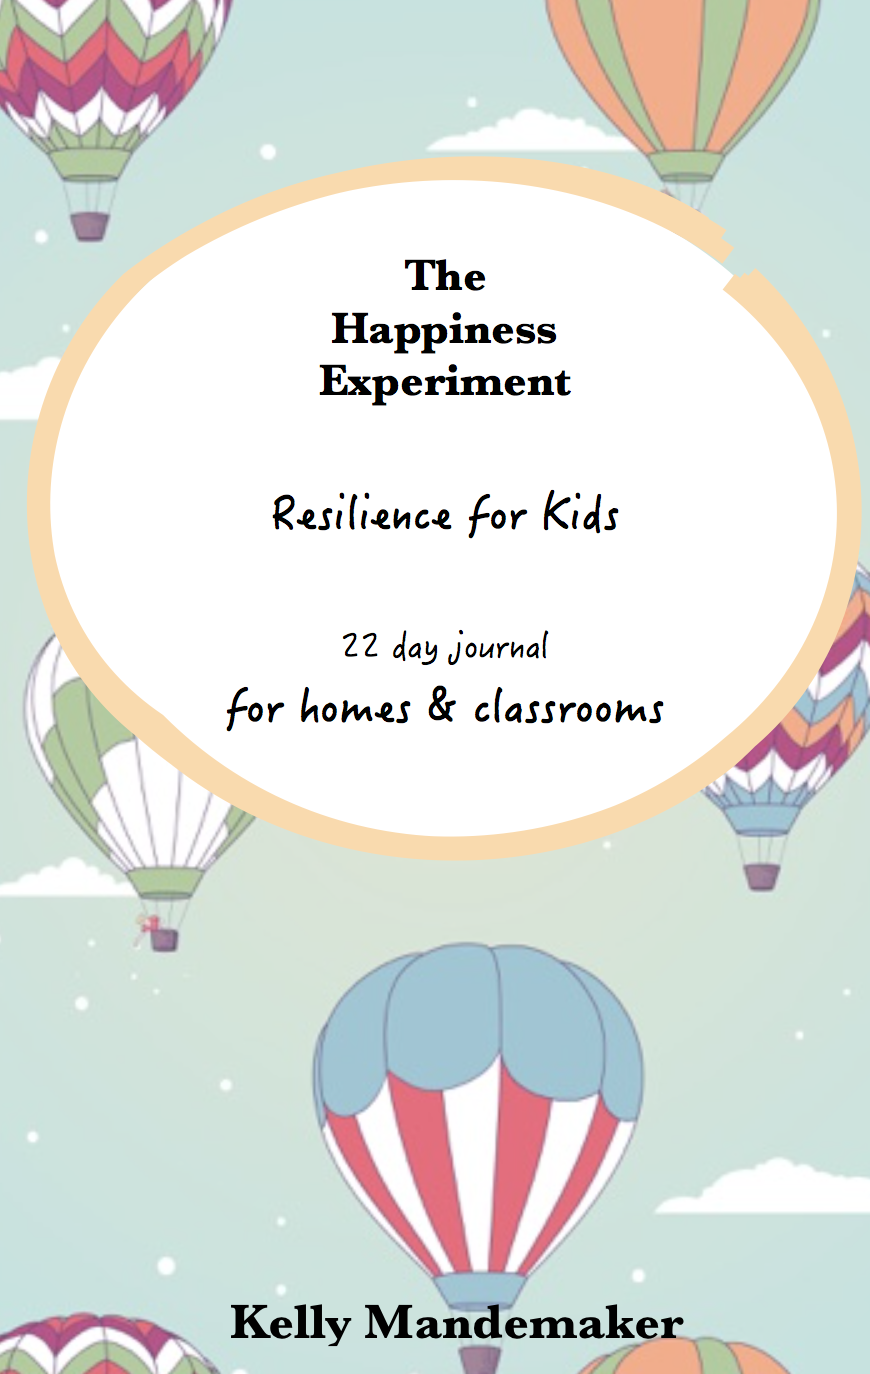 Resilient Kids are Made. Not Born. - Welcome! I am so excited to be here, WITH YOU.If you are reading this, there's one thing we already have in common. We both know the value of personal growth in our kids. Given that 1 in 7 kids are affected by mental illness in a given year, it's our responsibility to impart simple, yet powerful skills to help them overcome the challenging days. And give them a tool they can draw on at the blink of an eye. This is what you will be getting in this inspirational and engaging program that can be done over 22 consecutive days, an entire term, or as part of an classroom integrated unit ( if you are a wonderful teacher reading this).This is the ULTIMATE classroom program for students aged 4+ which has been delivered to over 1700 educators and parents' inboxes globally.Download your A4, full colour, 52 page program at a click of a button, delivered into your inbox instantly. It is licensed for up to 30 students and can be printed in colour or b&w.Kids will:- learn how to label the positives in their day- discover basic meditation techniques for self regulation- explore how laughter can release oxytocin in the brain- build resilience- colour their way to happiness with the engaging mindful colouring pages...... and most importantly, experiment with happiness!